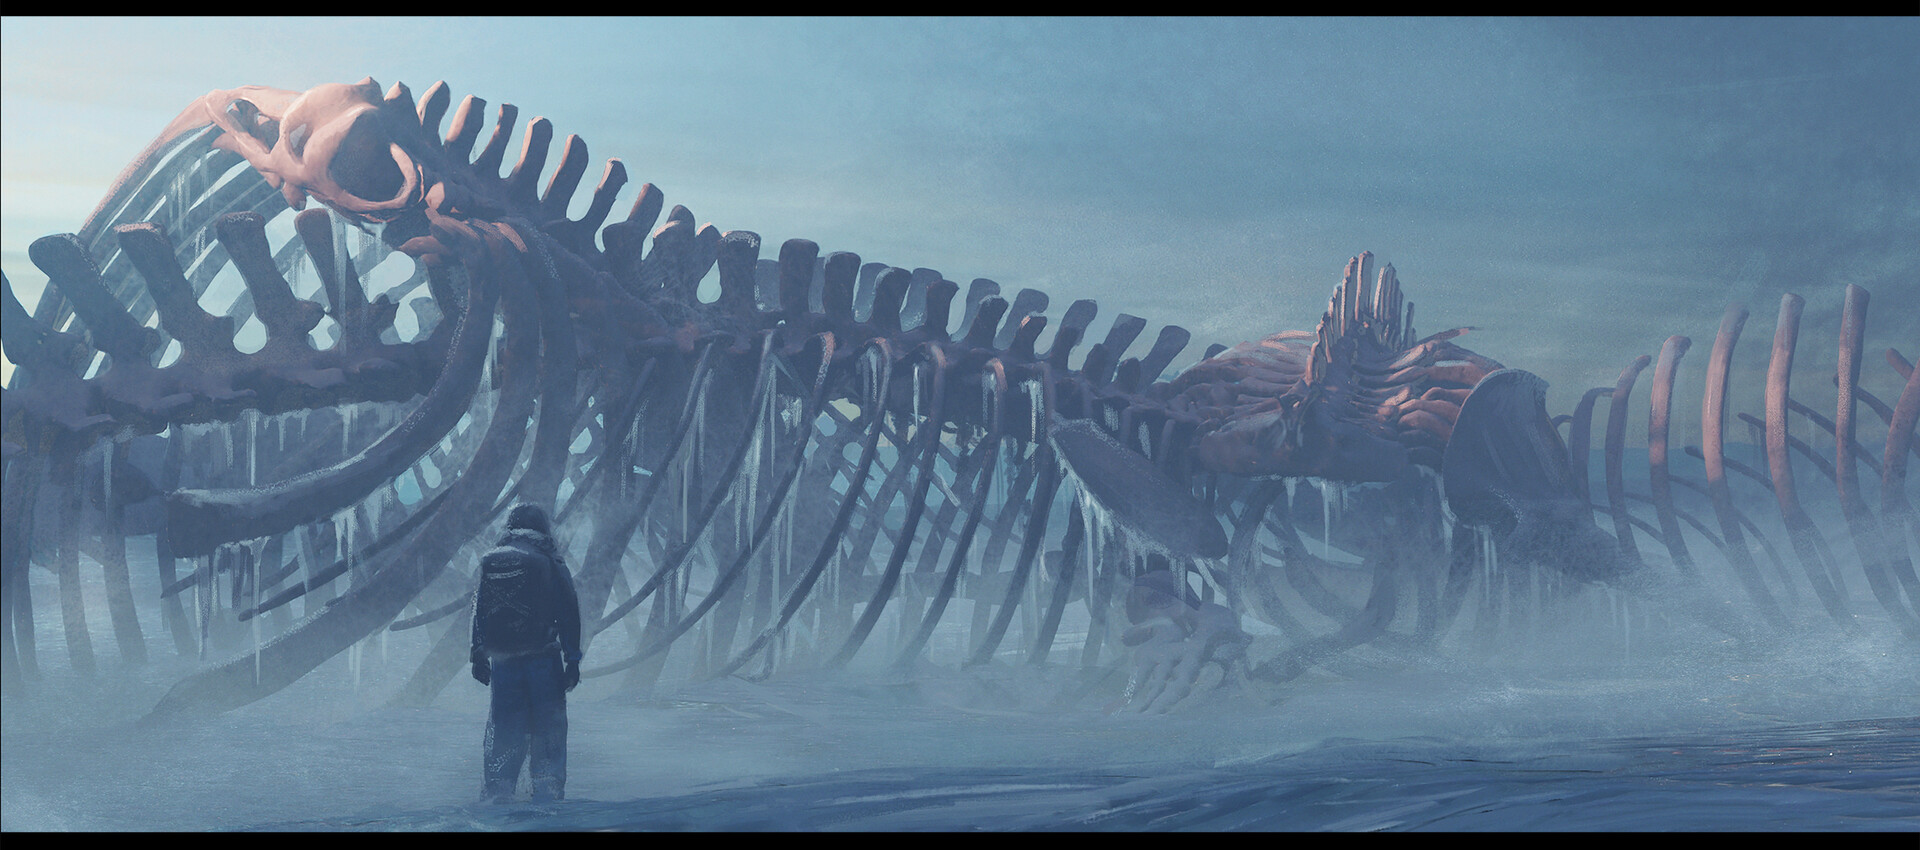 Outside of the village, the crew discovers a massive boneyard. It looks like the remains of whale carcasses, but they are placed in such a way it almost feels like a shrine.